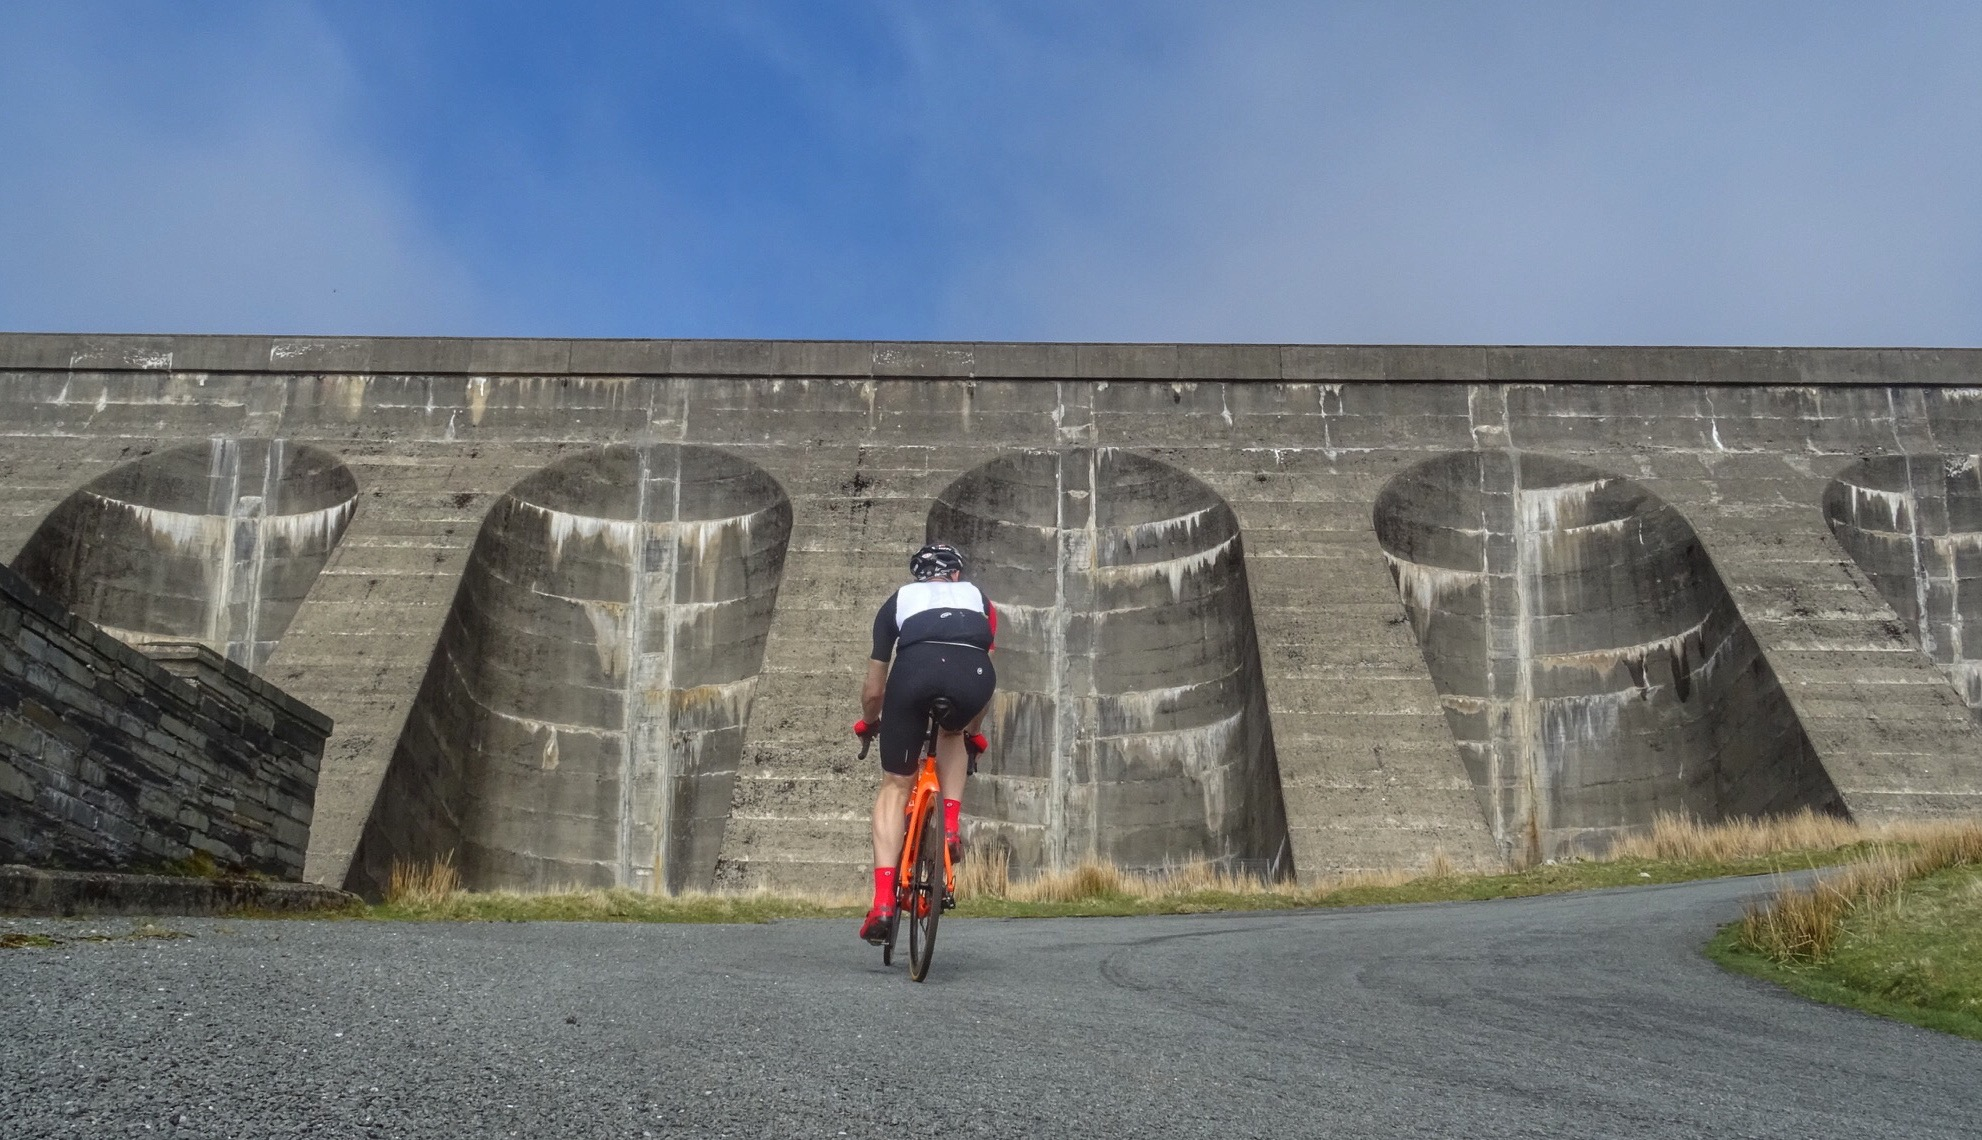 Ride up the very steep road until you get to the dam. Take the right fork and keep going until the road runs out. Simple.